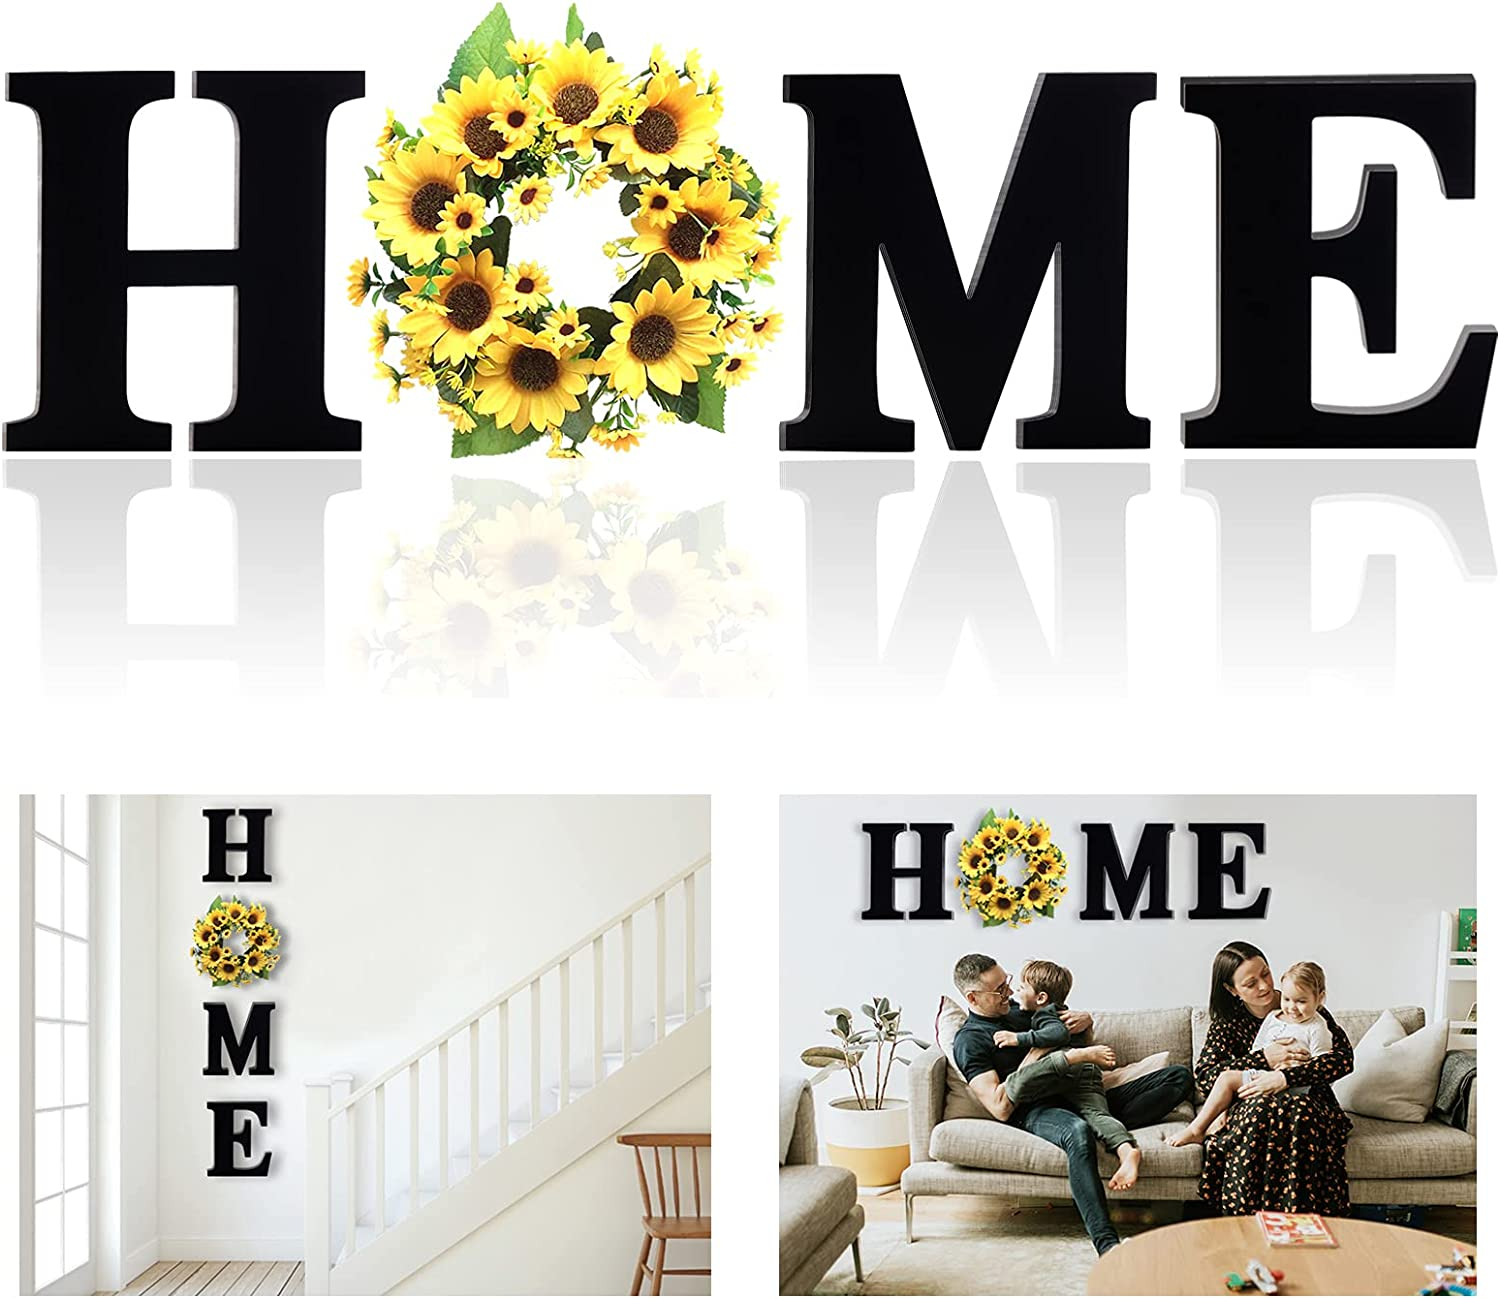 Guudoo Sunflower Kitchen Decor, Rustic Sunflower Wall Decor, Farmhouse Wooden Home Sign with 12 Inch Sunflower Wreath for O, Wall Hanging Wood Home Letters Decoration for House Living Room Entryway